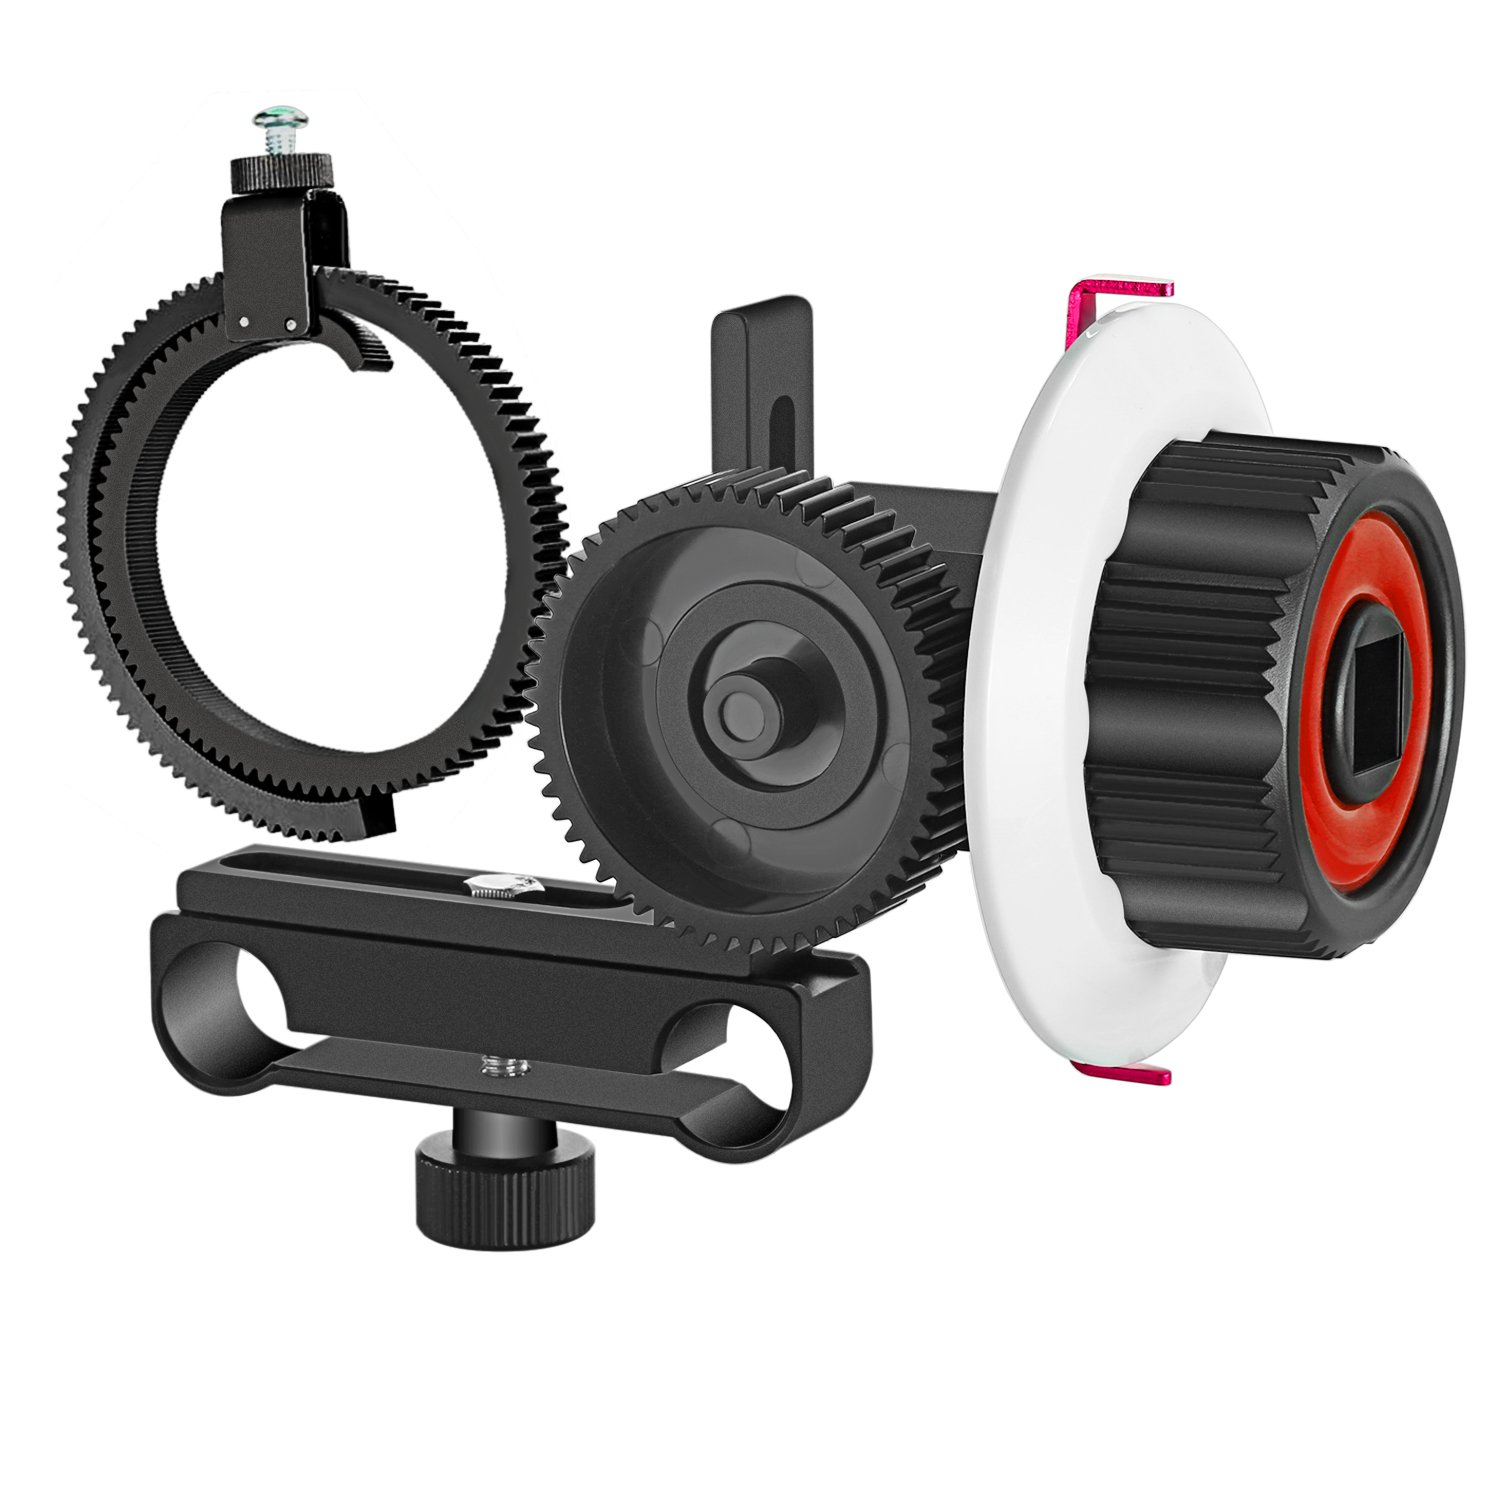 Neewer Follow Focus with Gear Ring Belt for Canon Nikon Sony and Other DSLR Camera Camcorder DV Video Fits 15mm Rod Film Making System, Shoulder Support, Stabilizer, Movie Rig(Blue+Black) 10090363